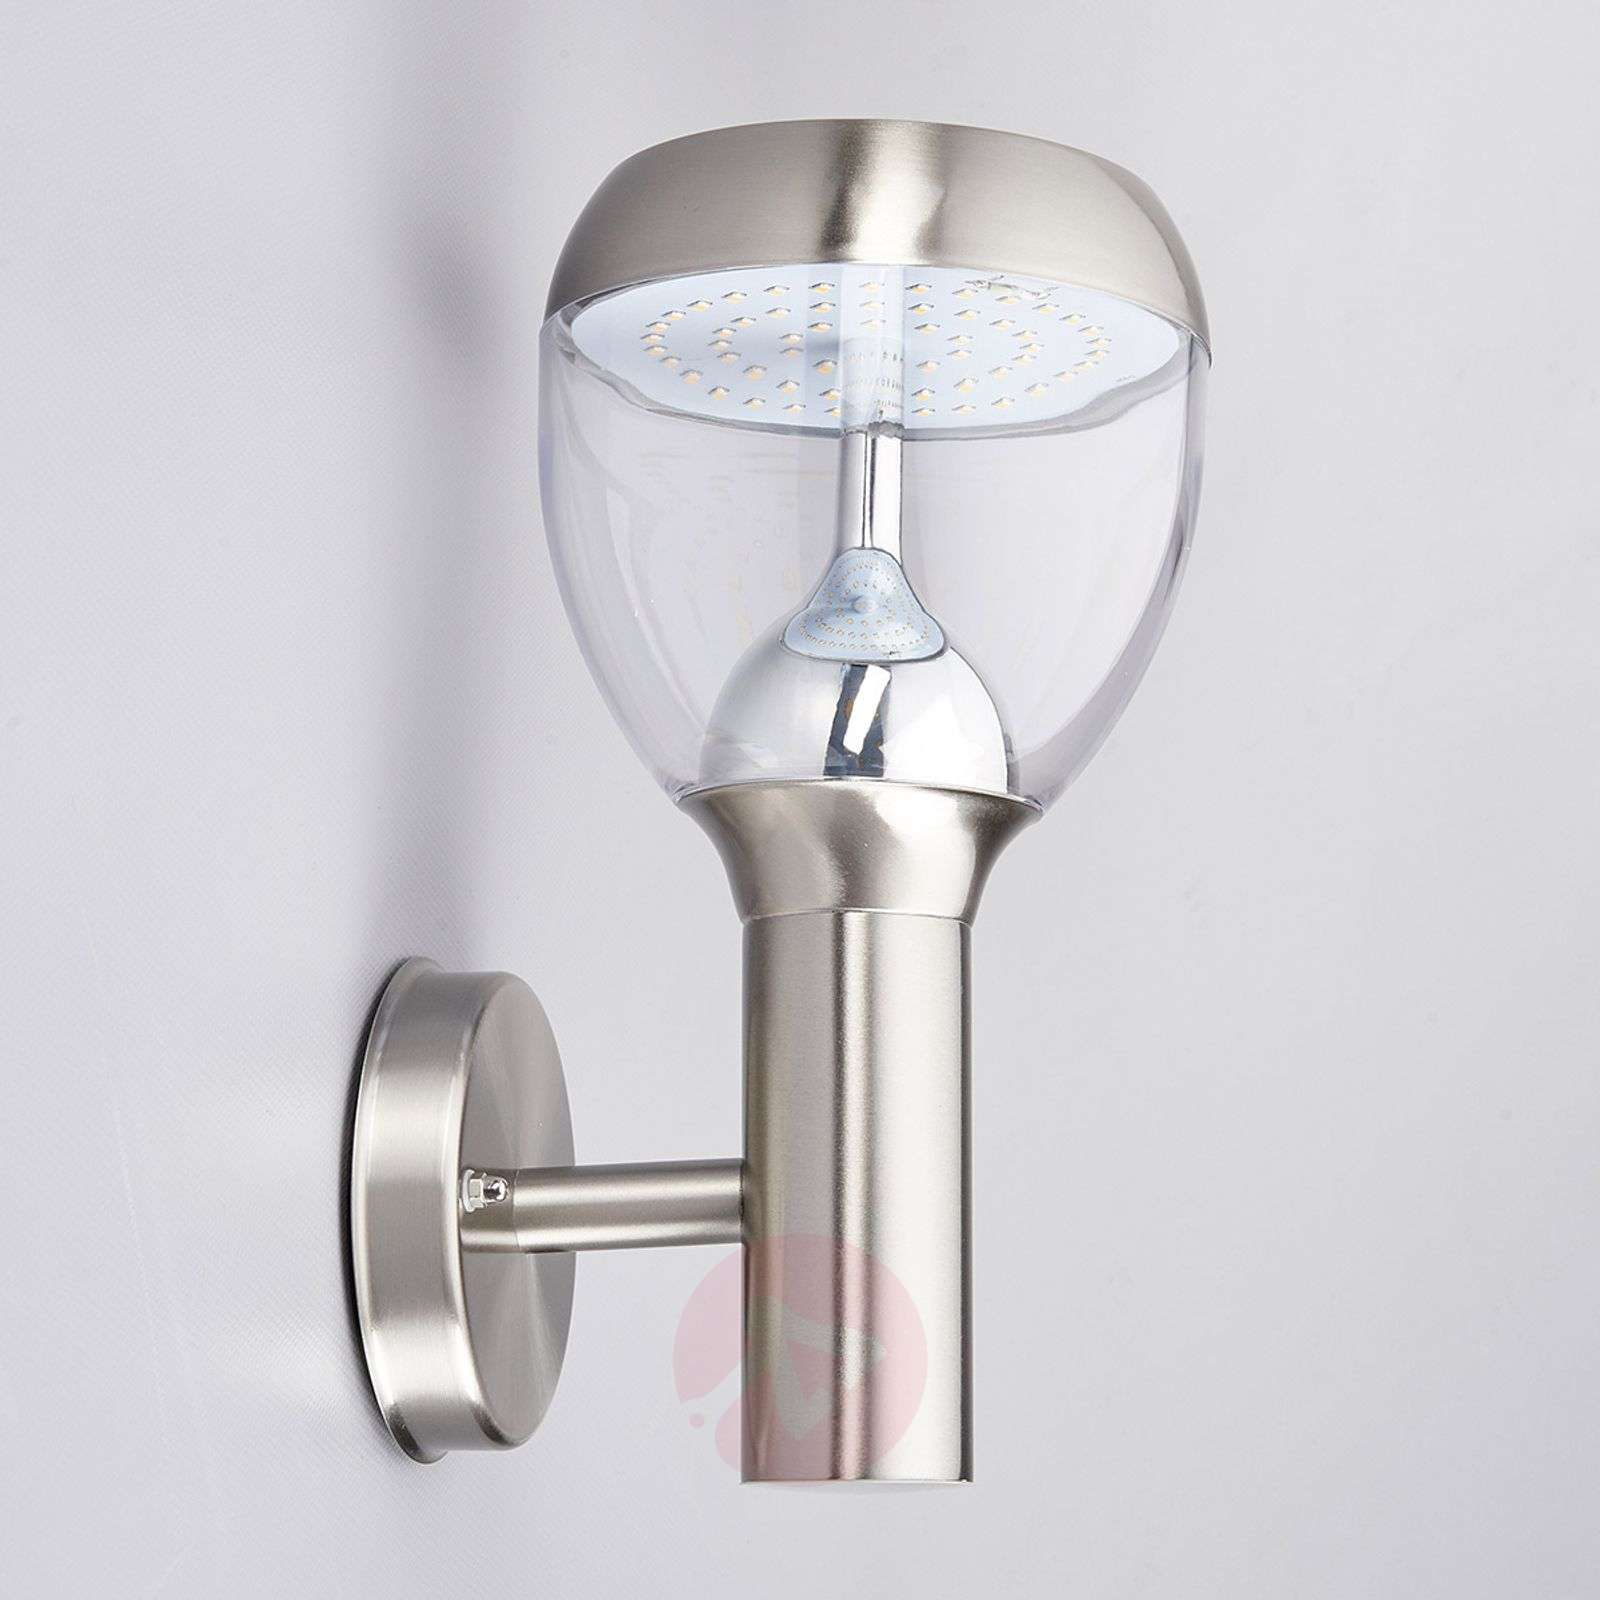 Etta LED outdoor wall light made of stainl. steel-9988023-02